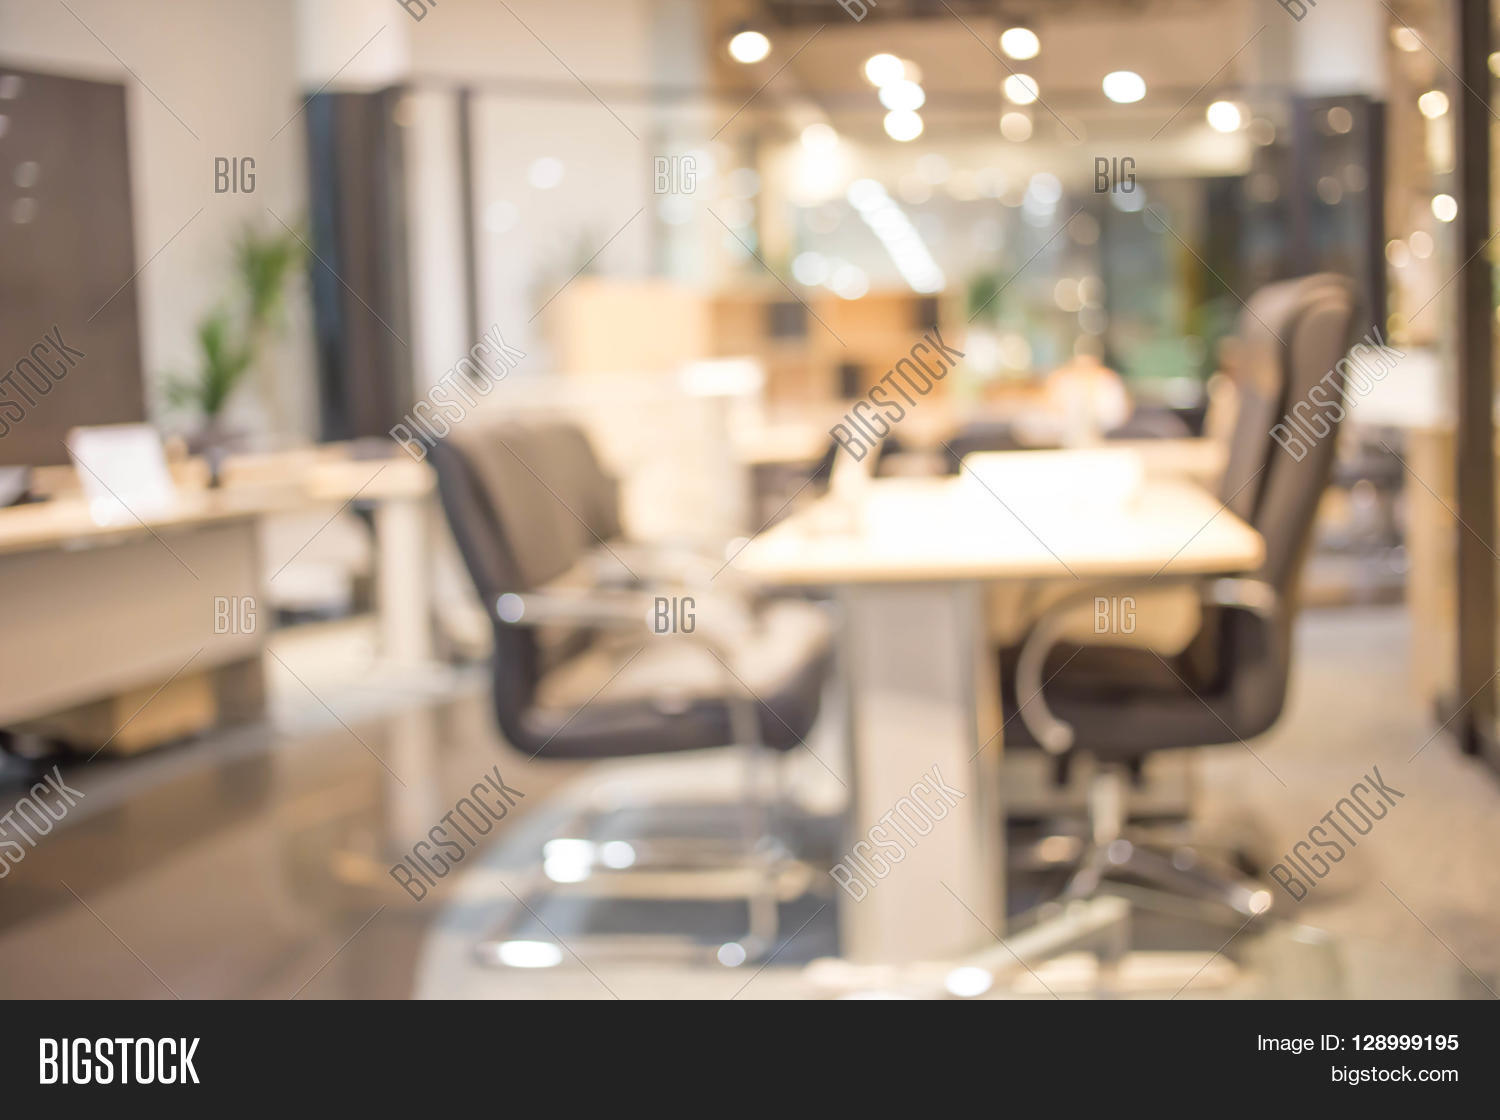 Blur Background Office Image Photo Free Trial Bigstock